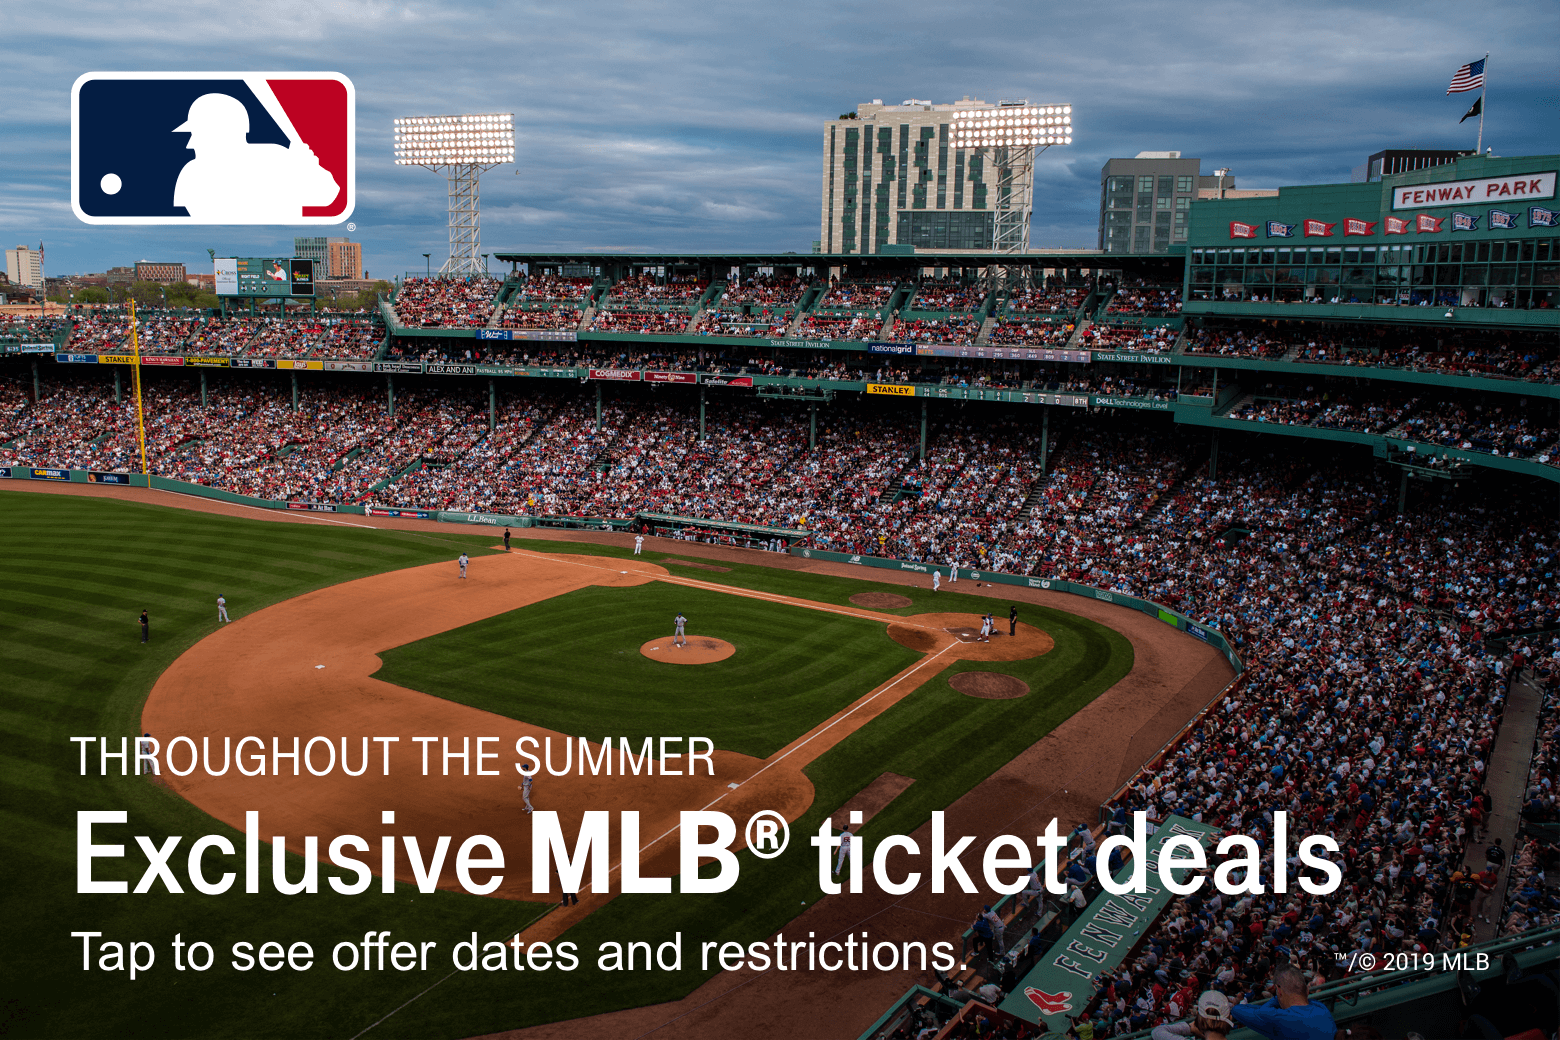 MLB. Exclusive MLB® ticket deals. Throughout the summer. Tap to see offer dates and restrictions. TM/© 2019 MLB.